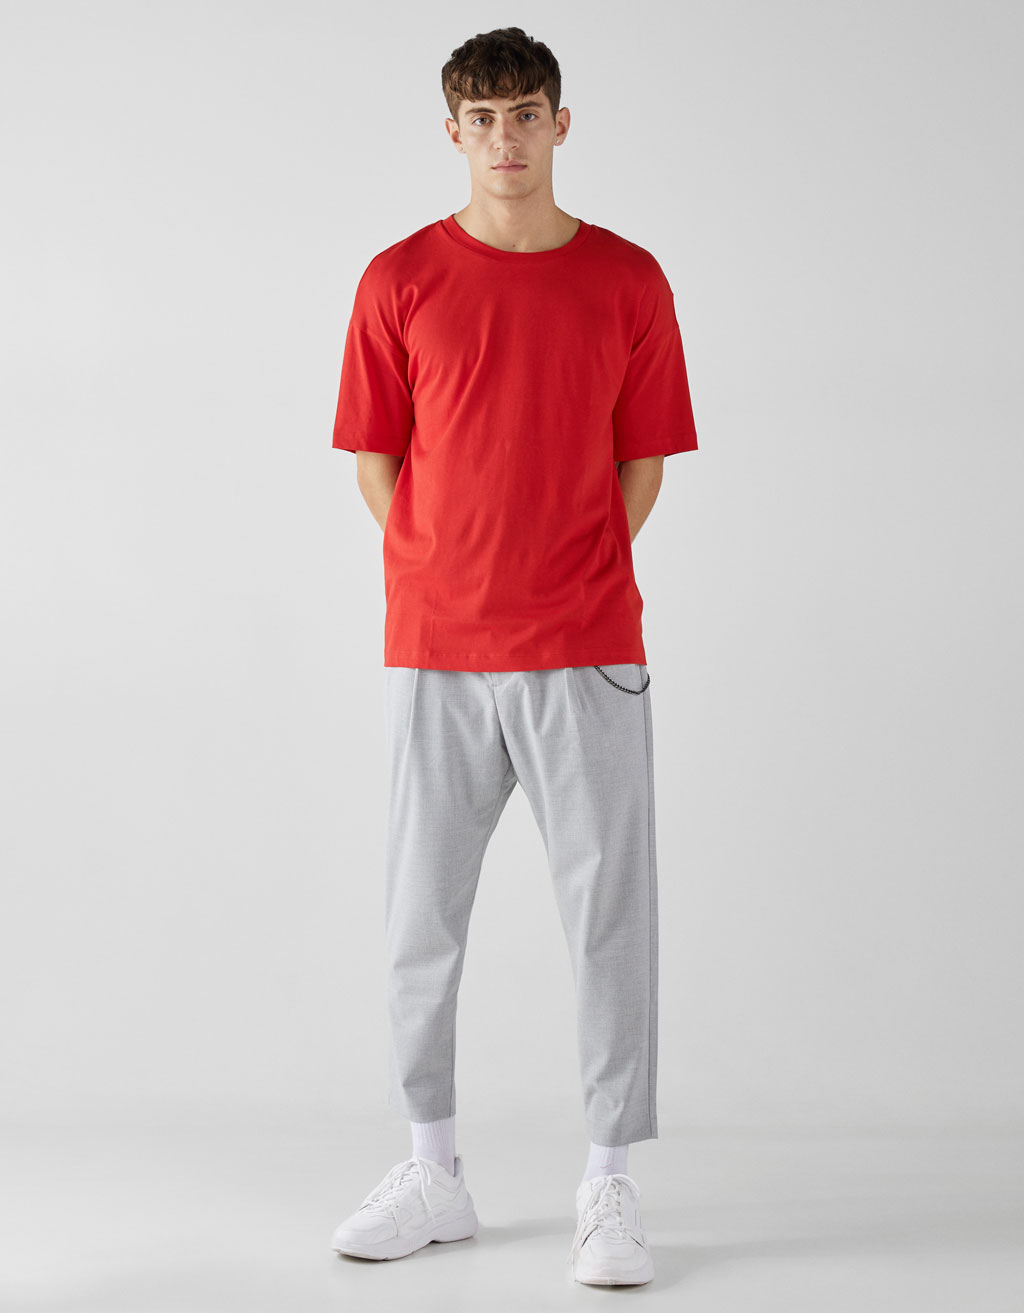 T-shirt Boxy Fit